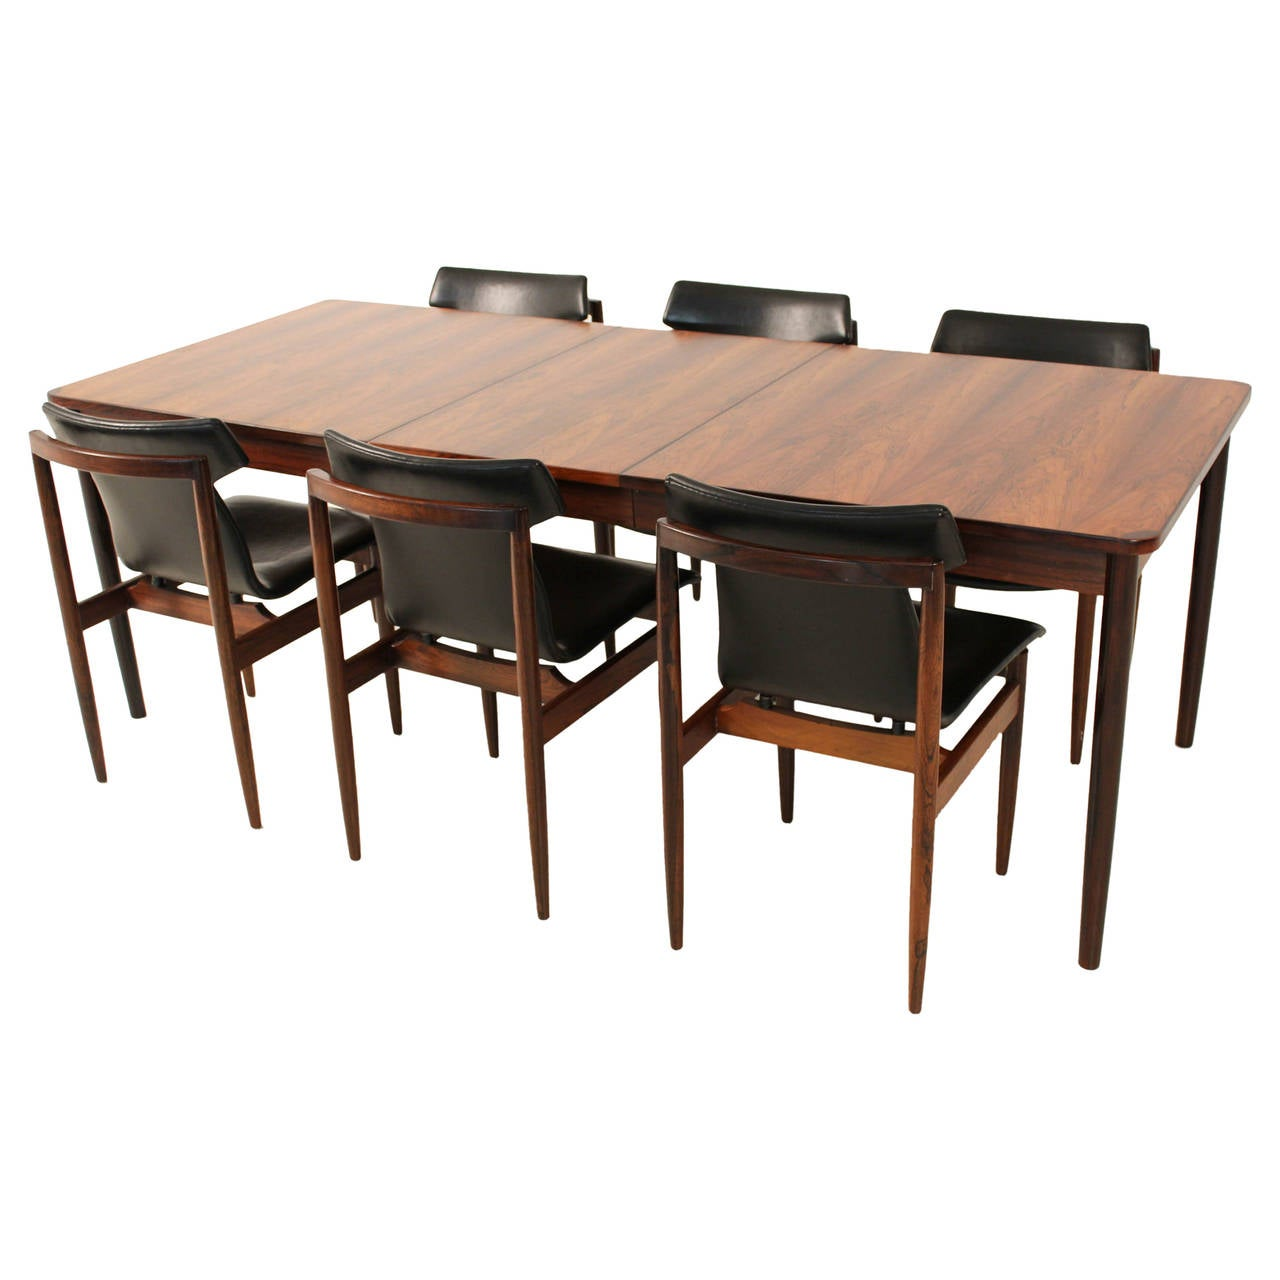 Mid century modern dining table by fristho at 1stdibs for Modern contemporary dining table